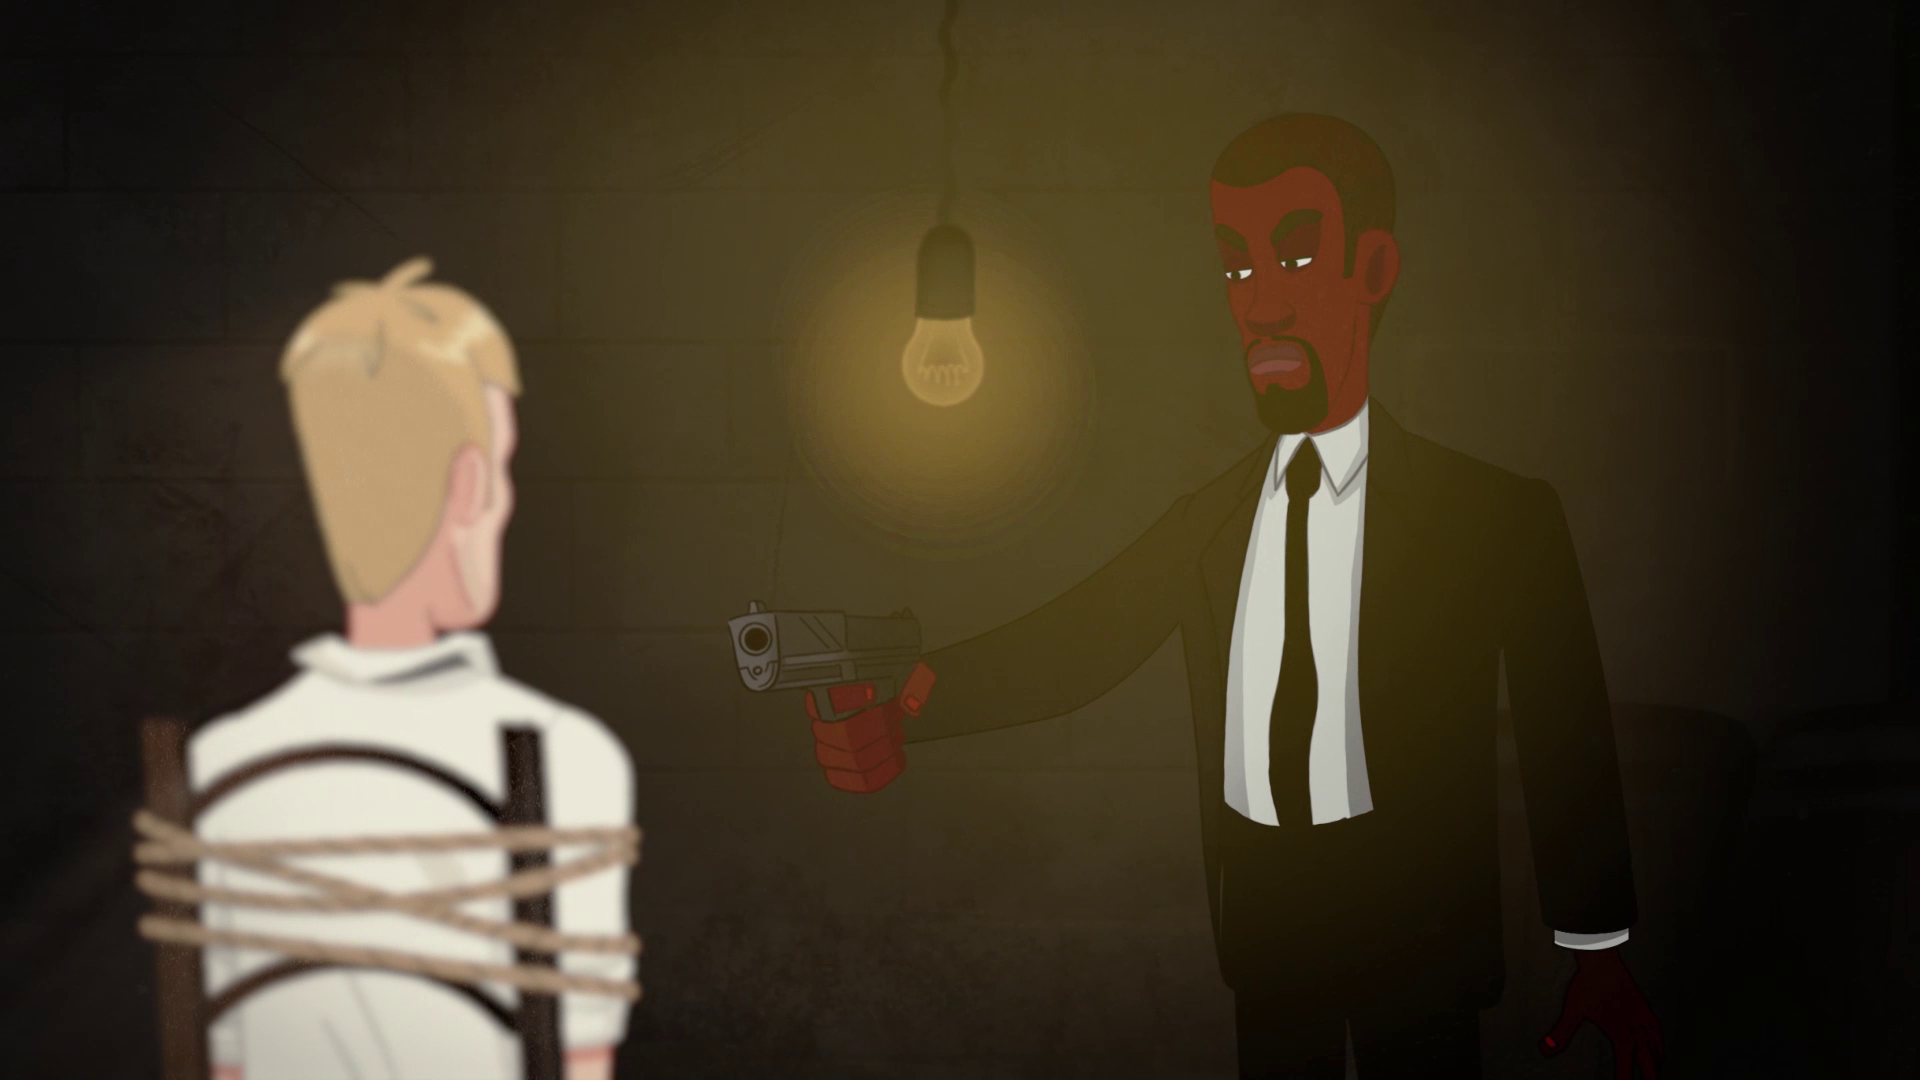 Under the barrel of a pistol - Animated Video